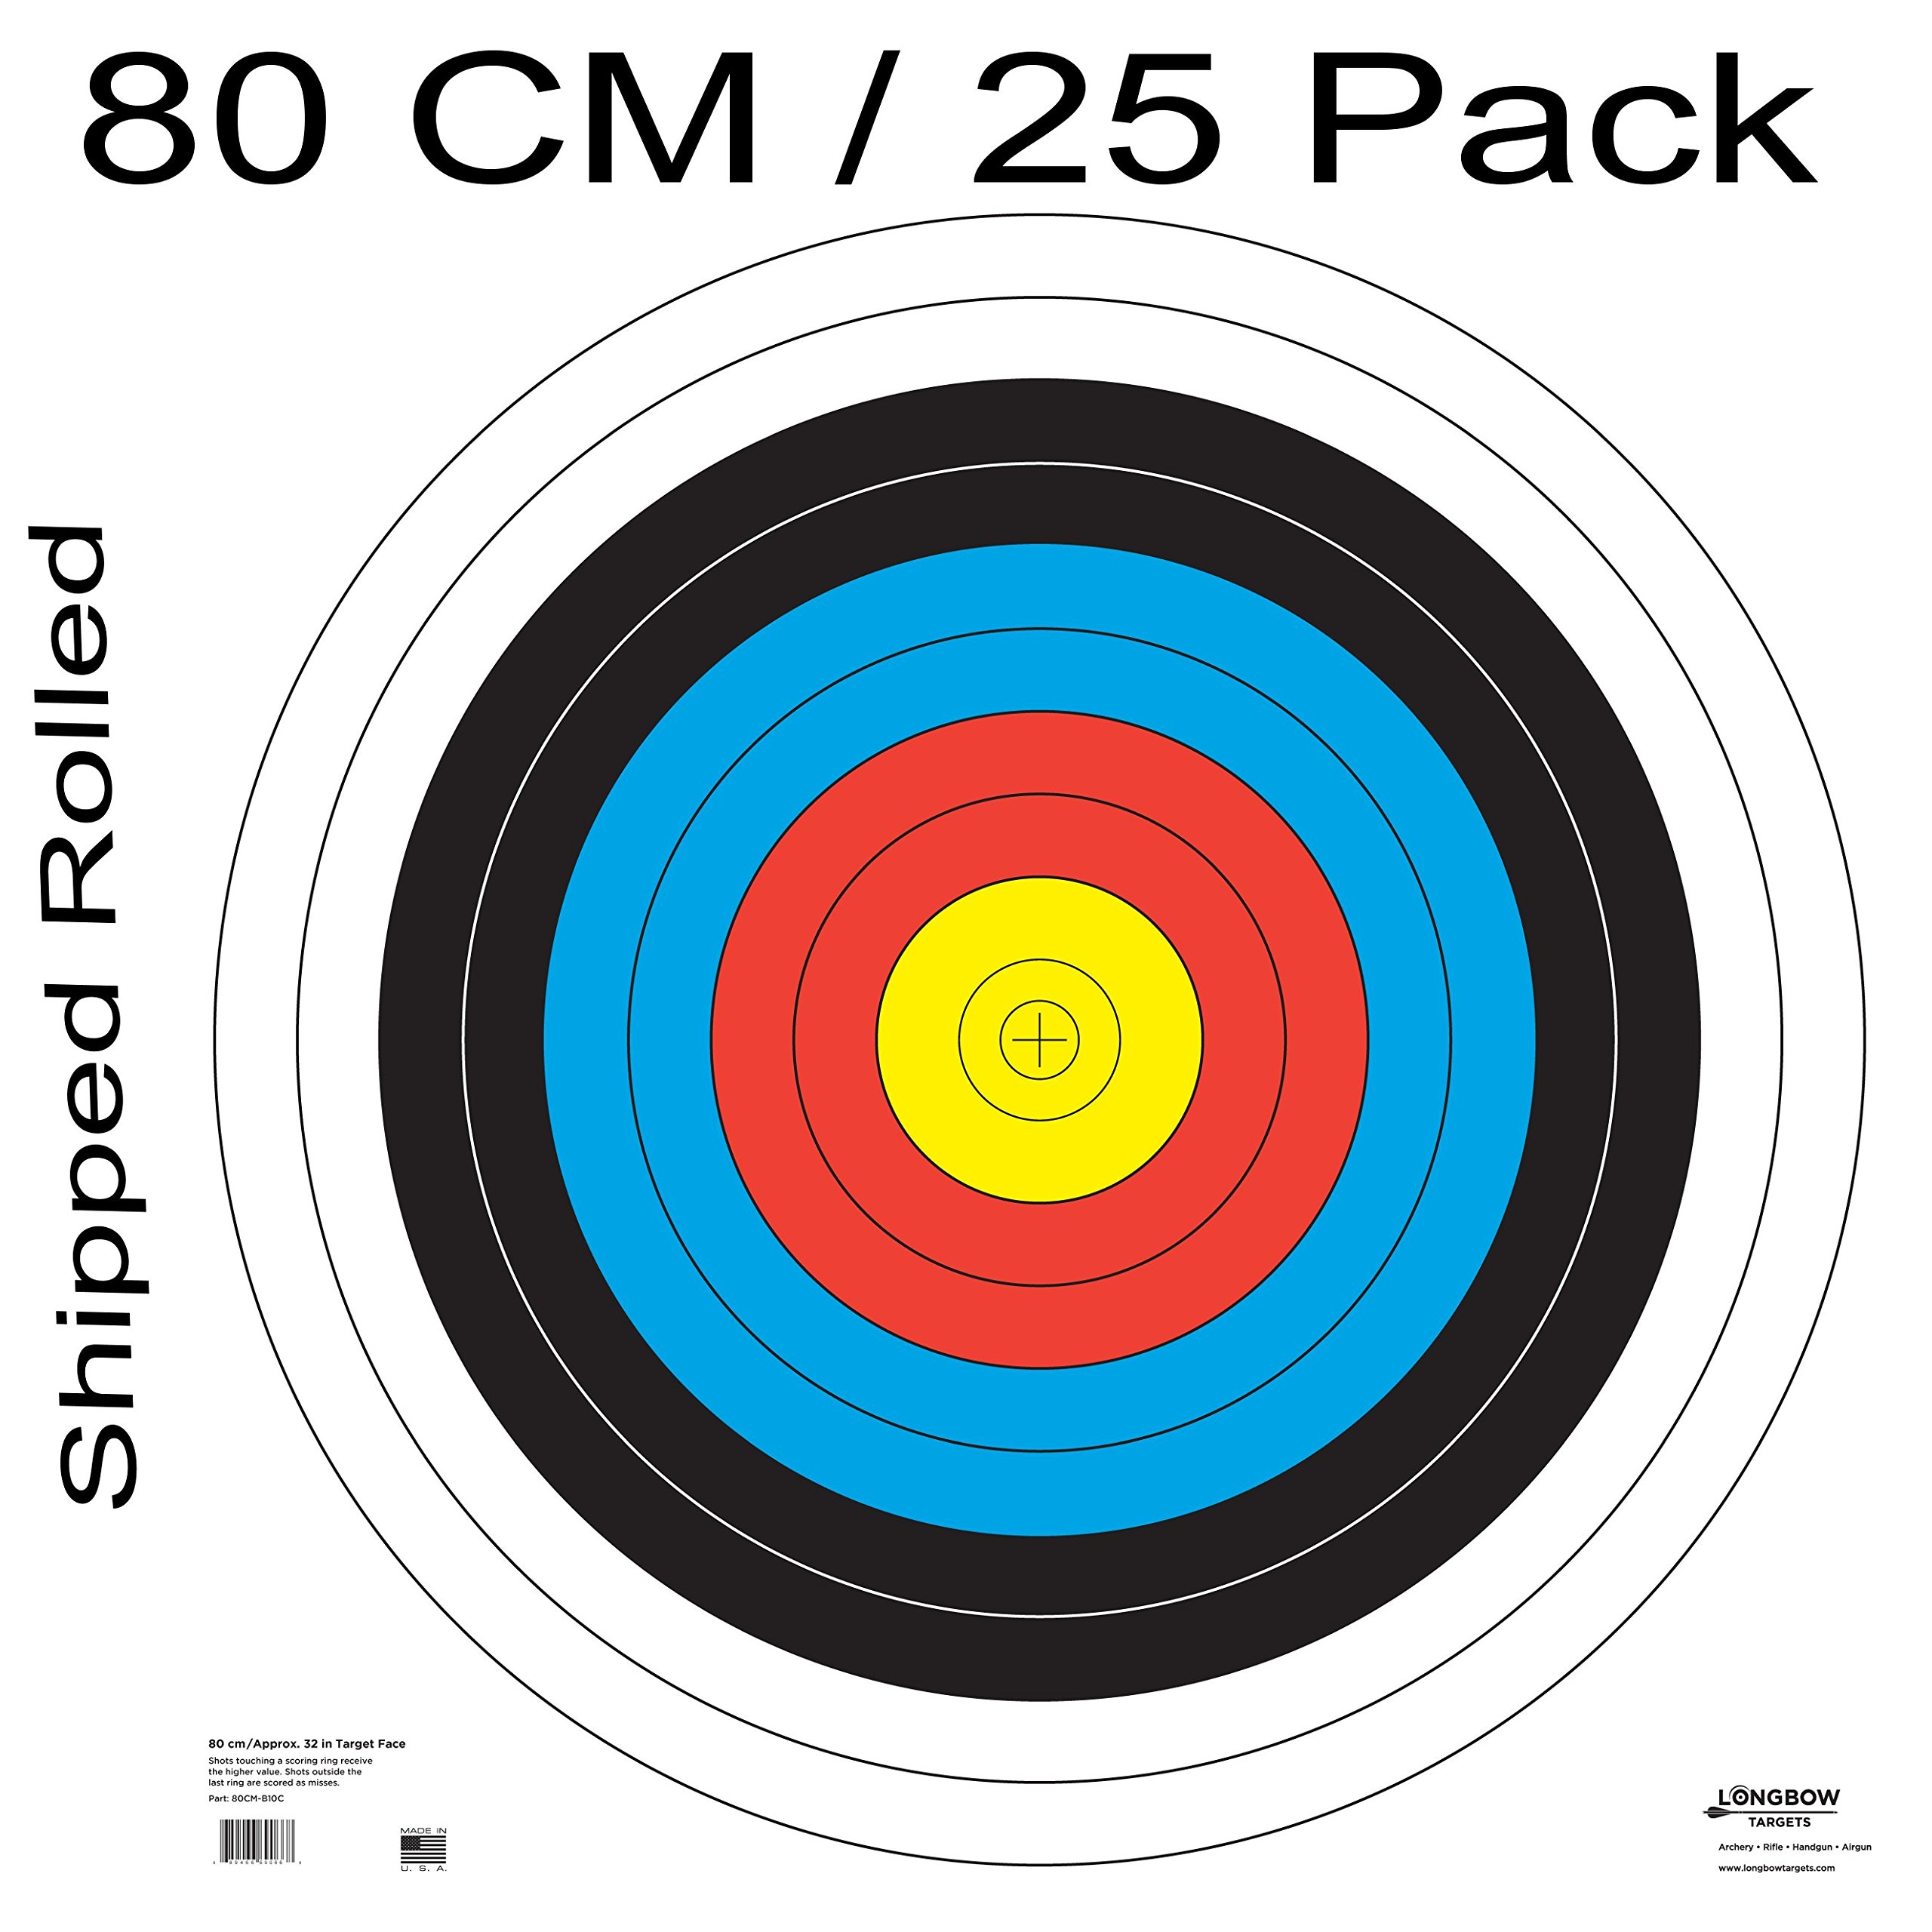 Archery 40cm & 80cm Targets by Longbow (25 Pack, 80cm Archery Paper) by Longbow Targets